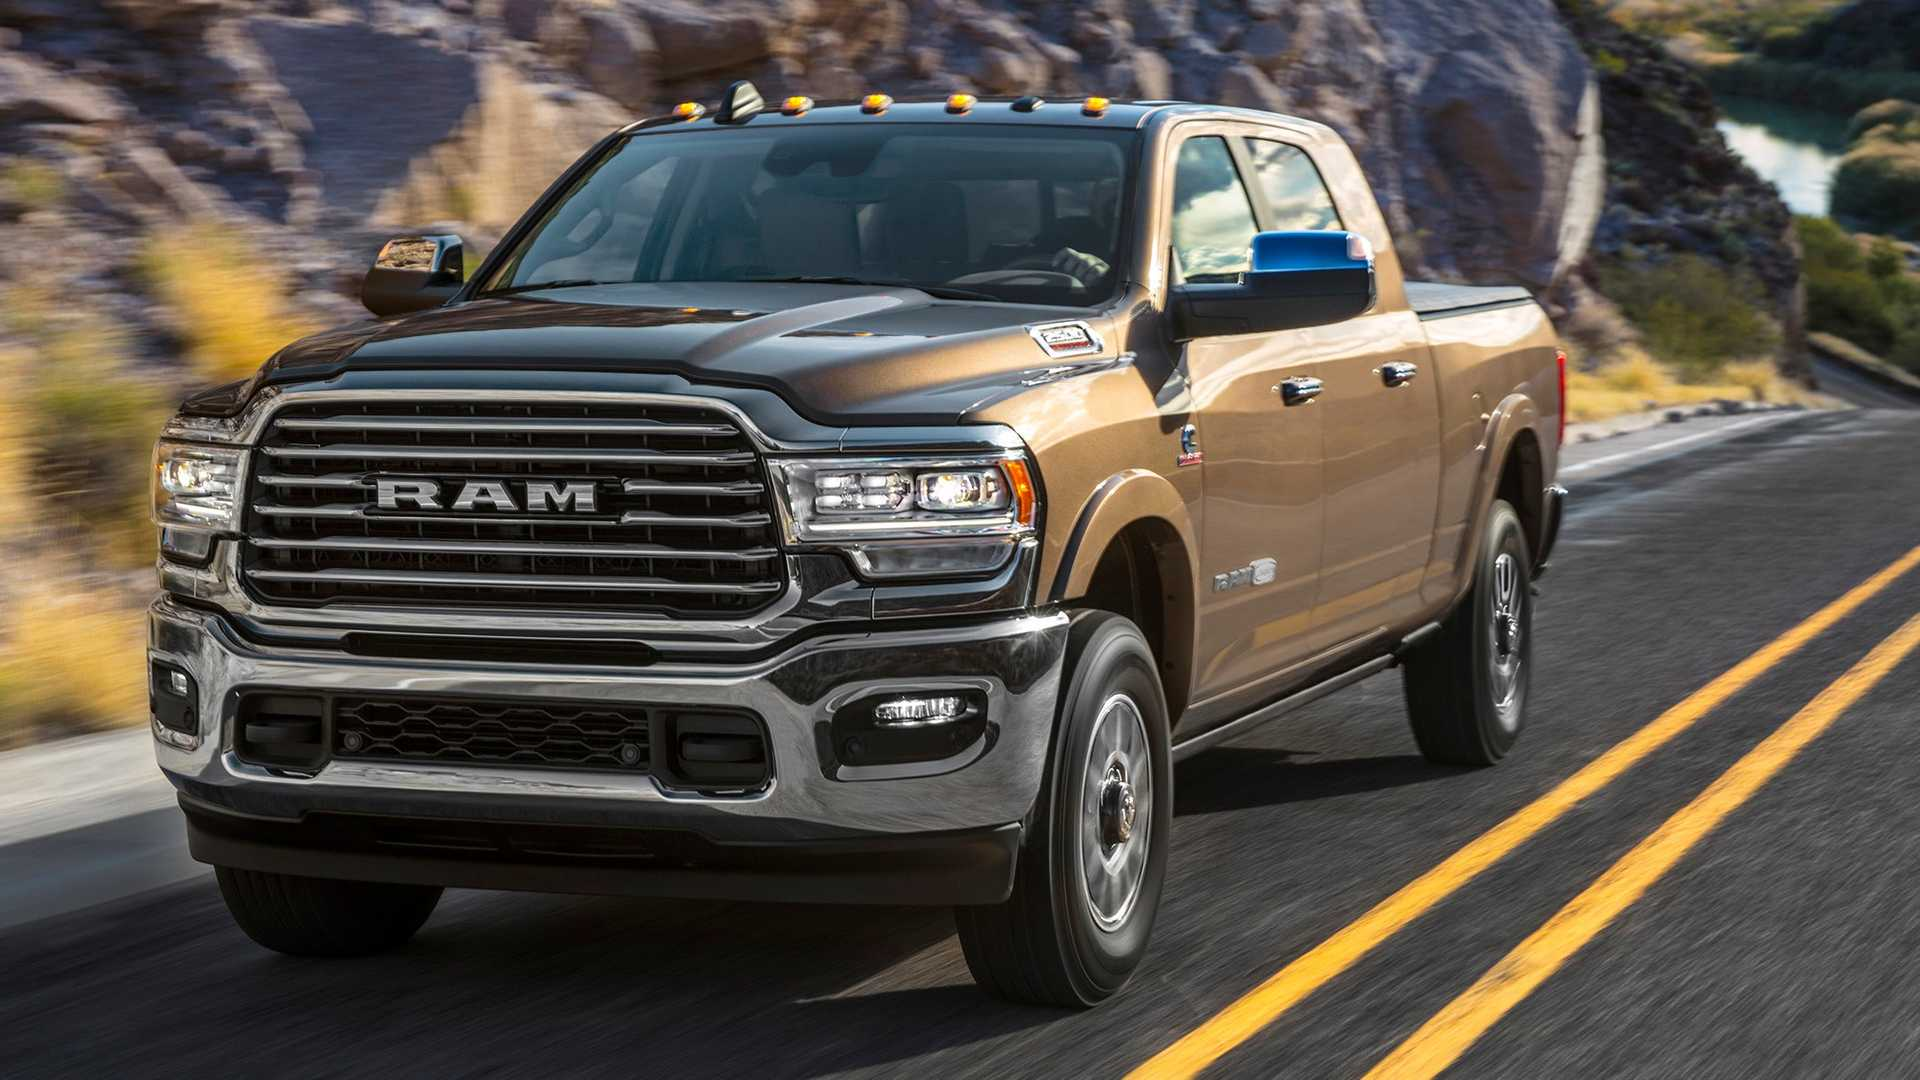 Dodge Ram Longhorn >> 2019 Ram Hd Laramie Longhorn Is A Leather Wrapped Workhorse